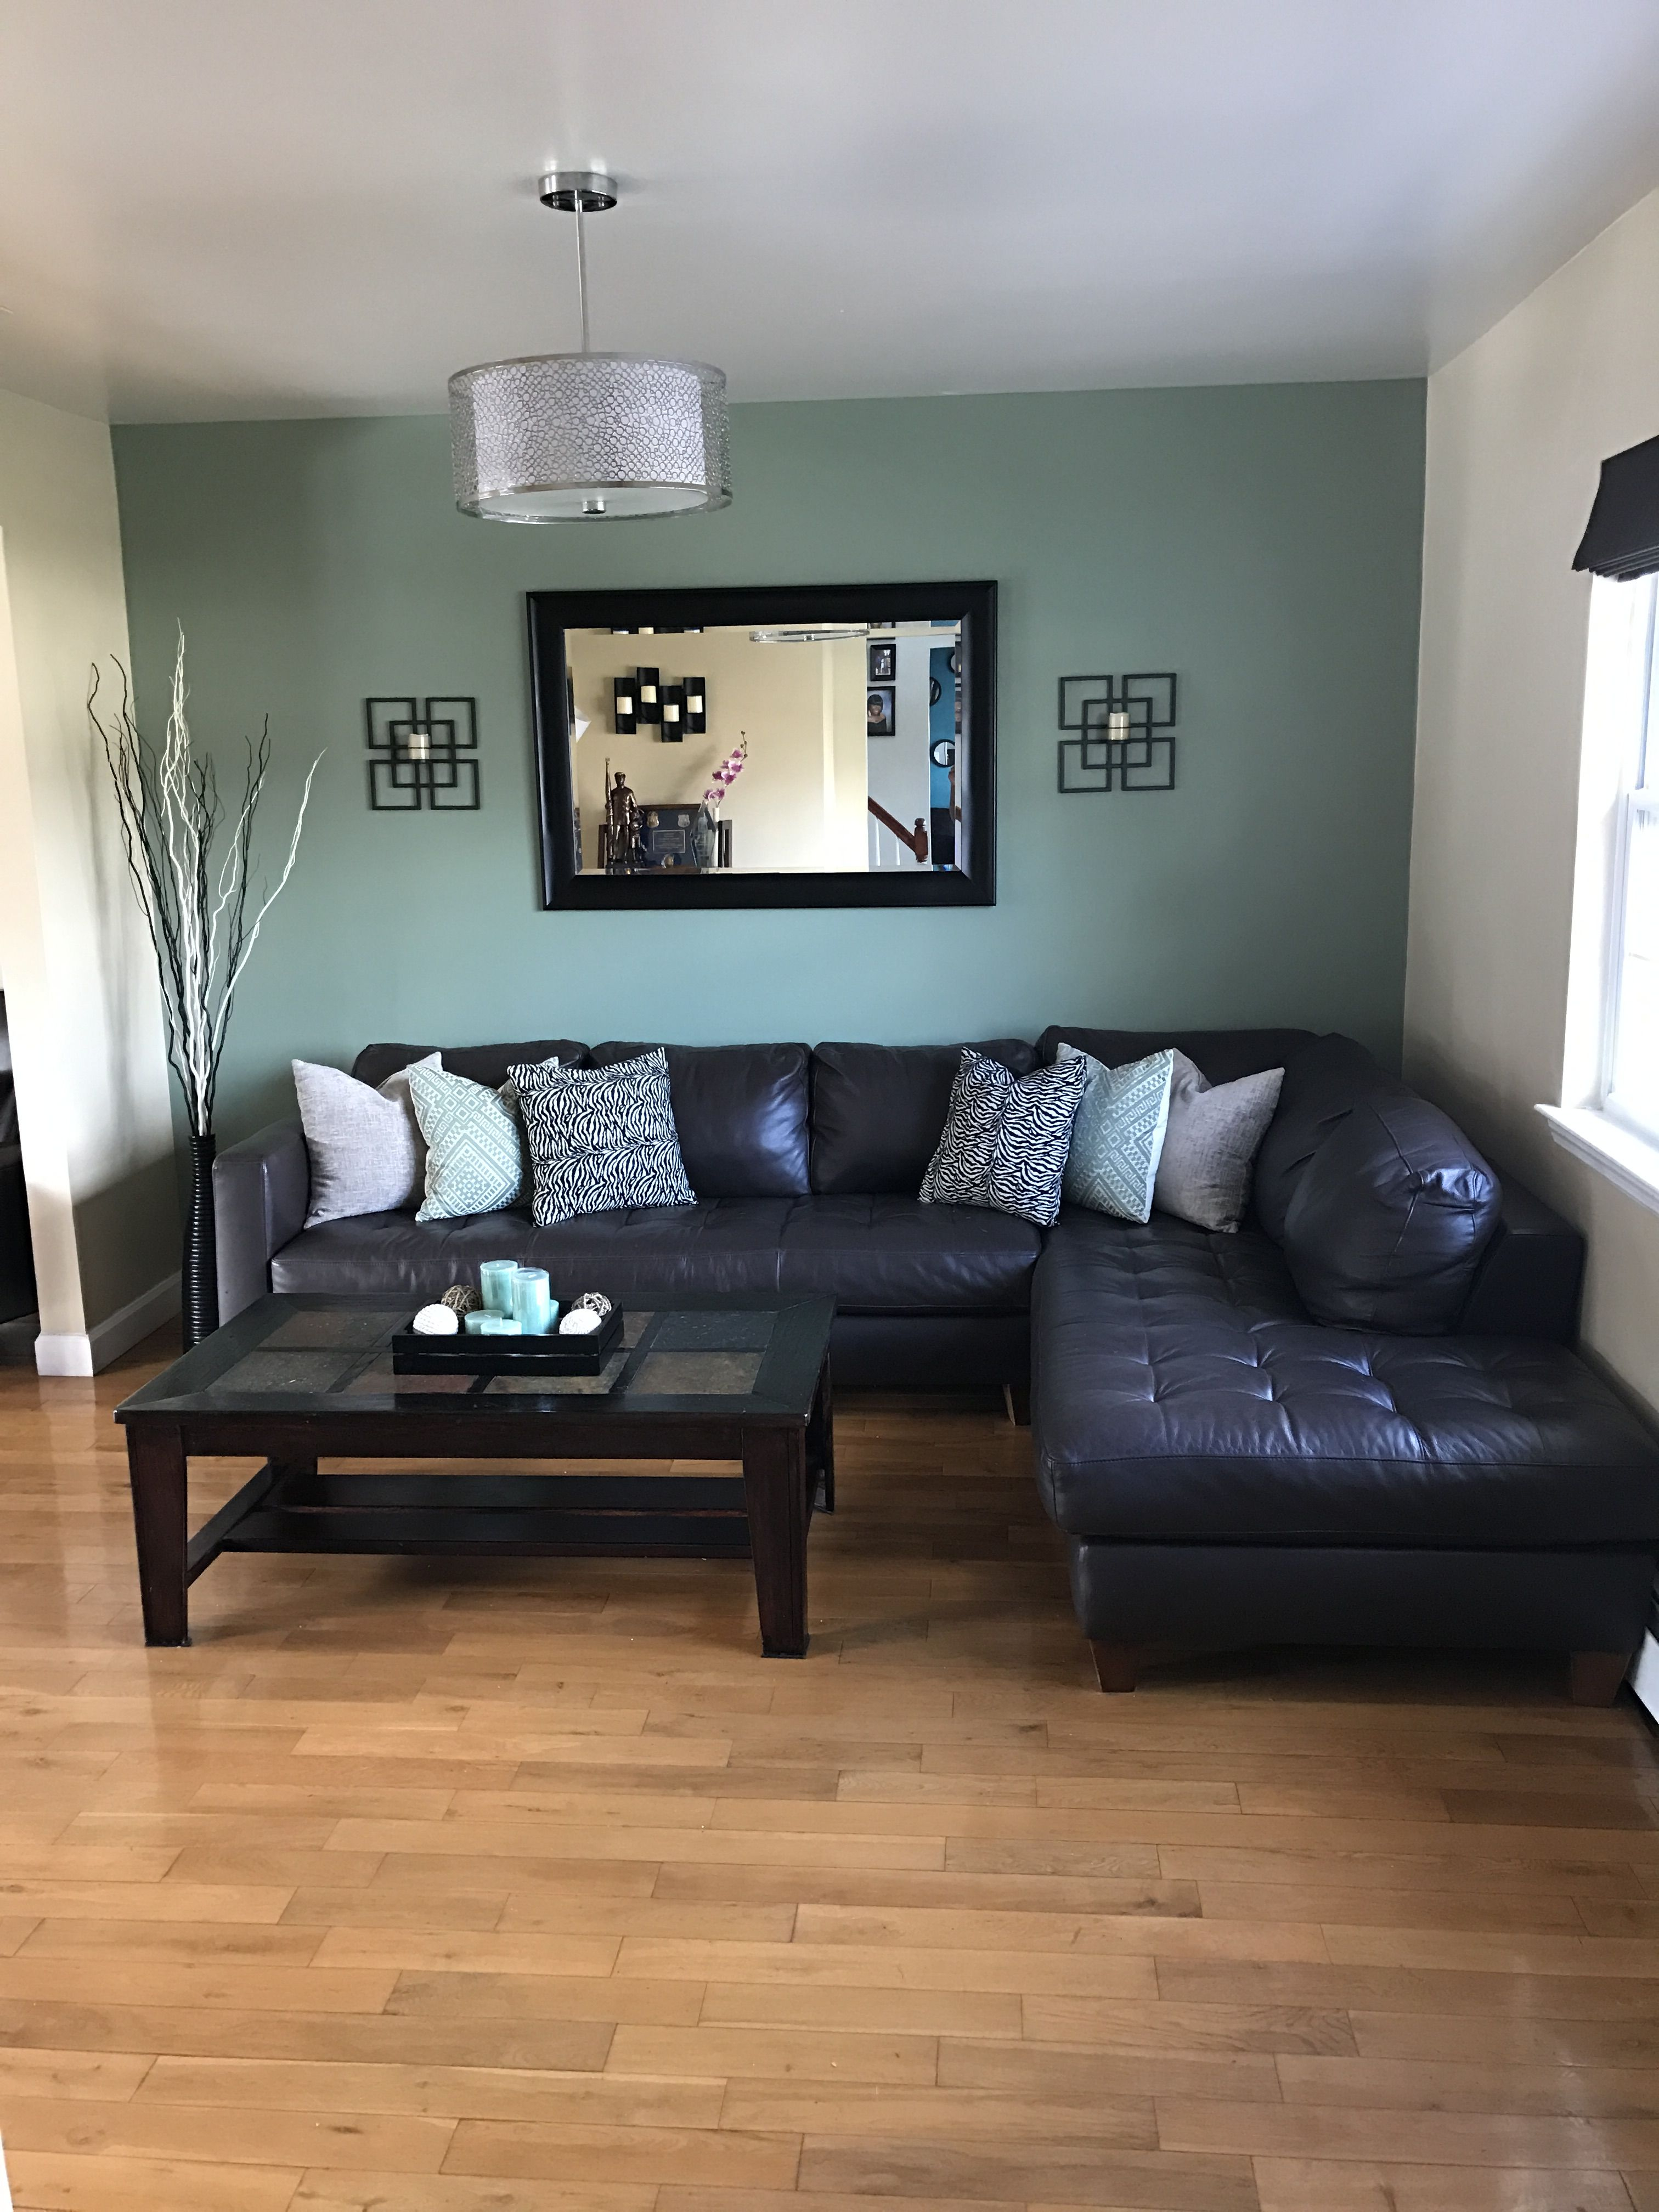 awesome green paint color for accent wall living room | Dark brown sectional looks great with sage green accent ...